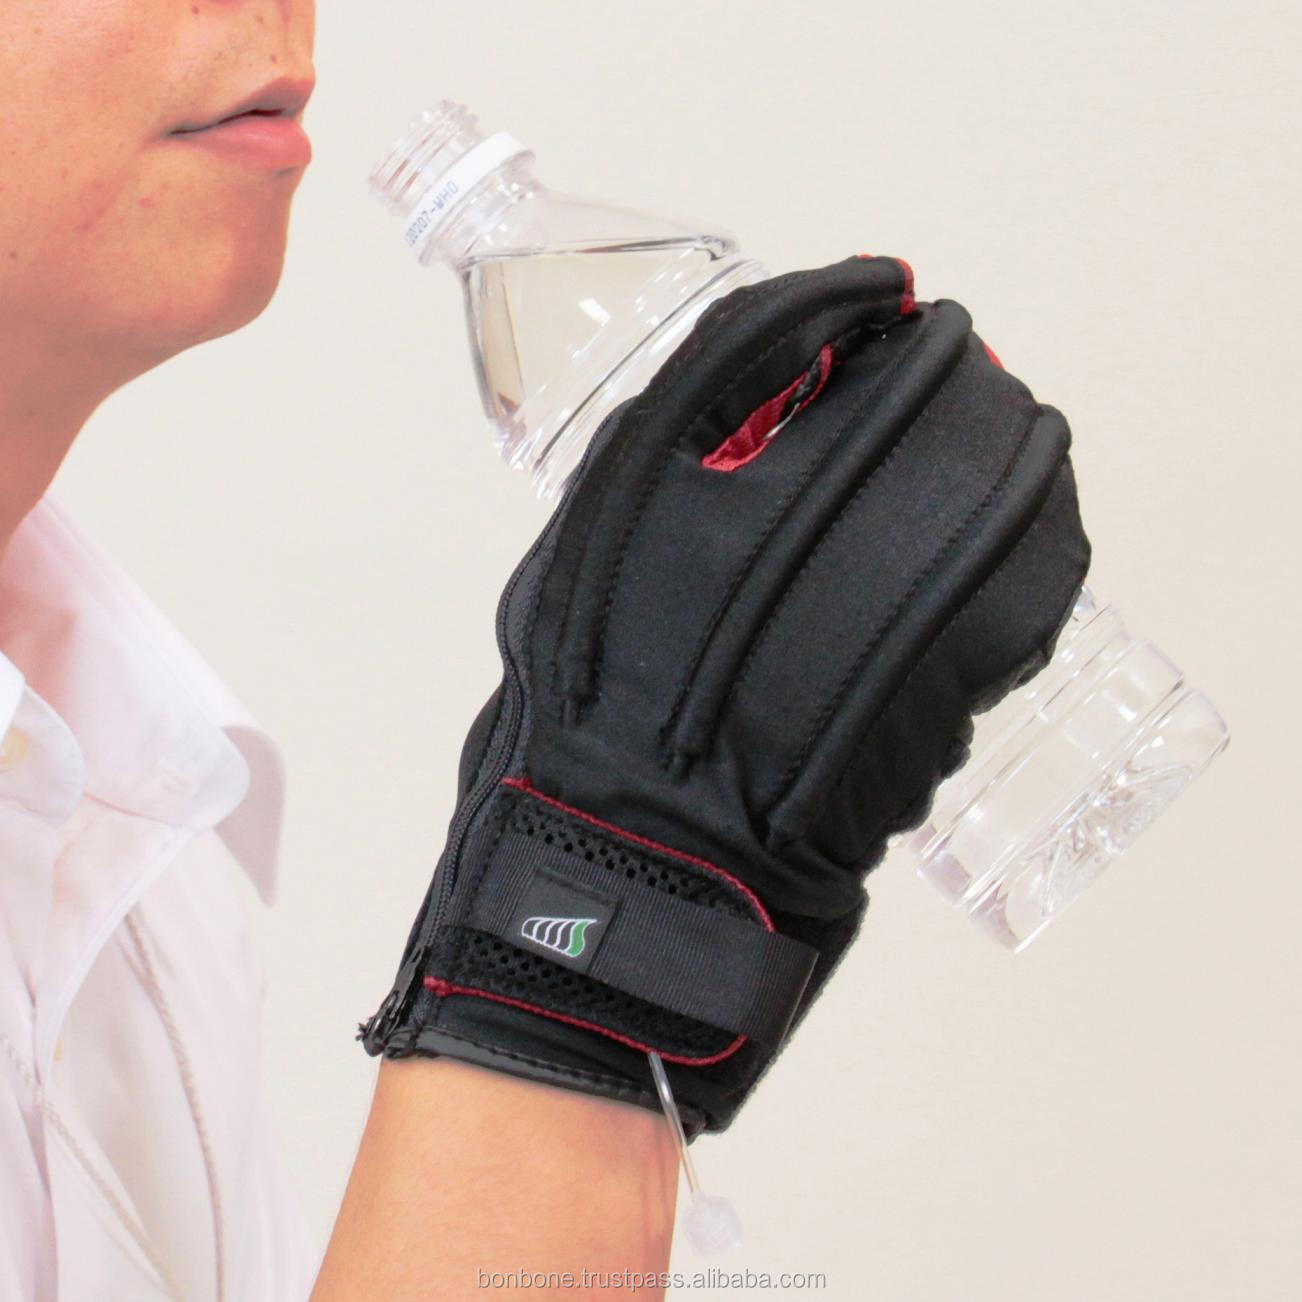 hand prosthetic, artificial hand, prosthetic, Made in Japan